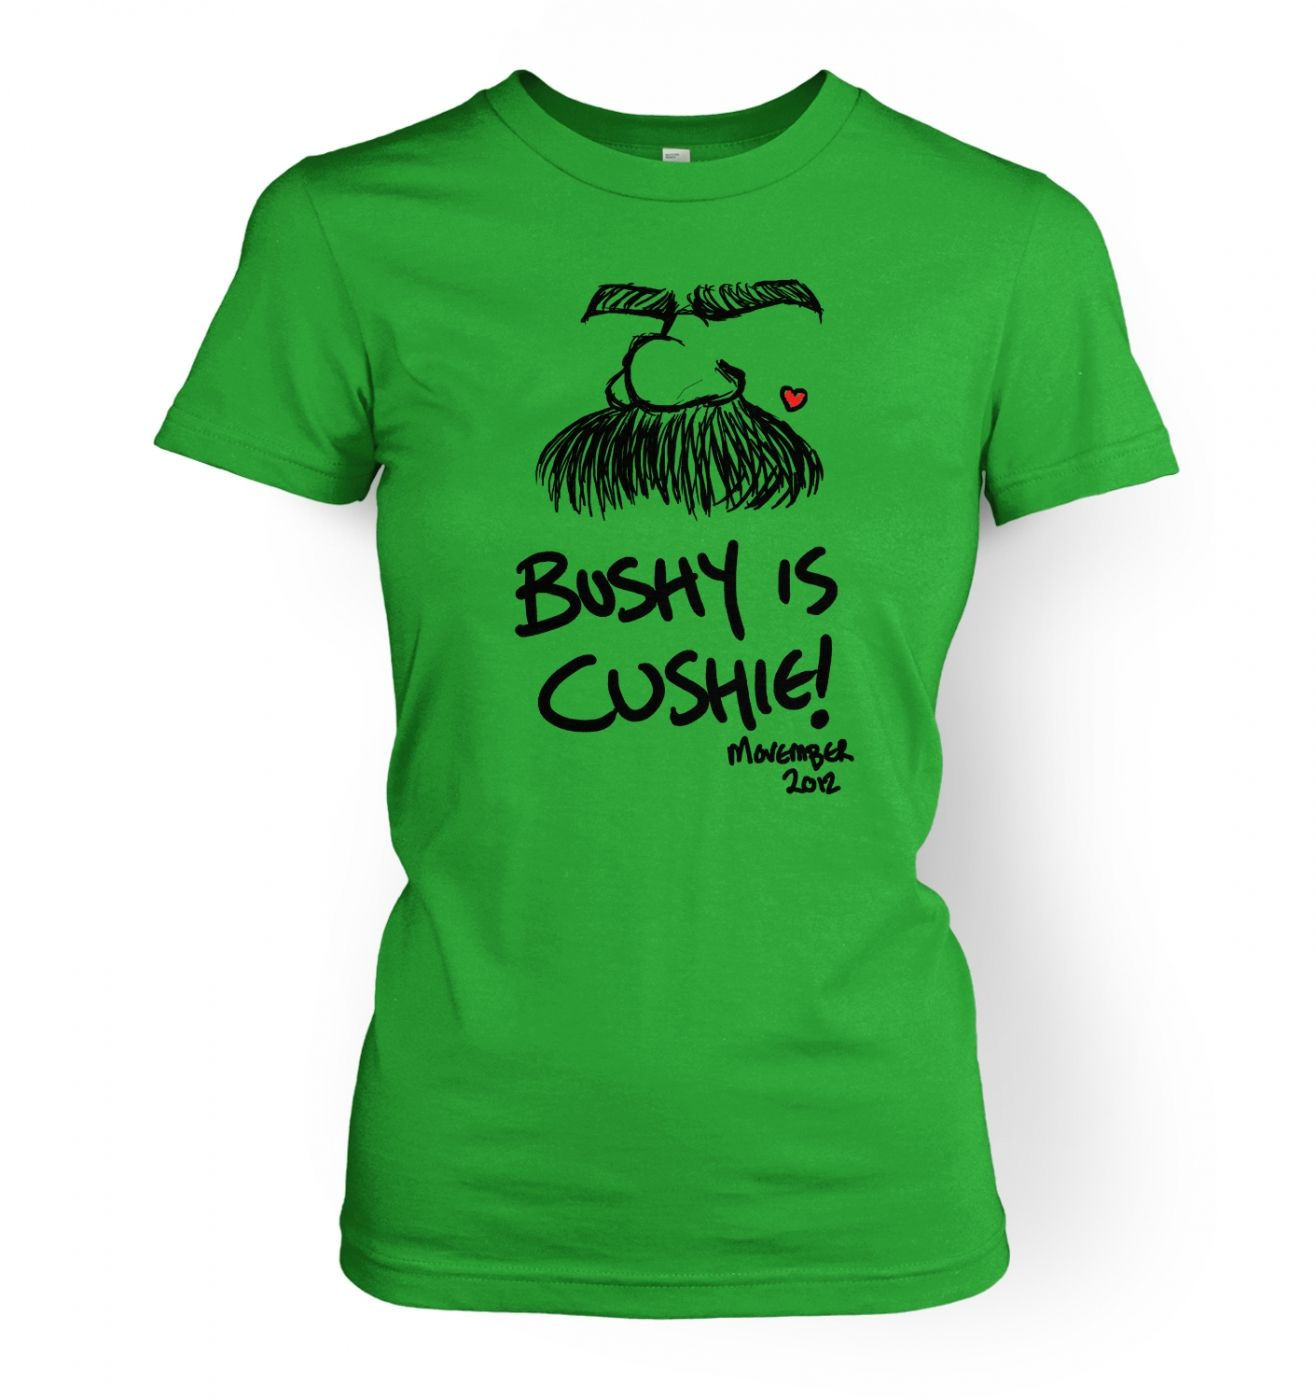 Bushy is cushie!   womens t-shirt